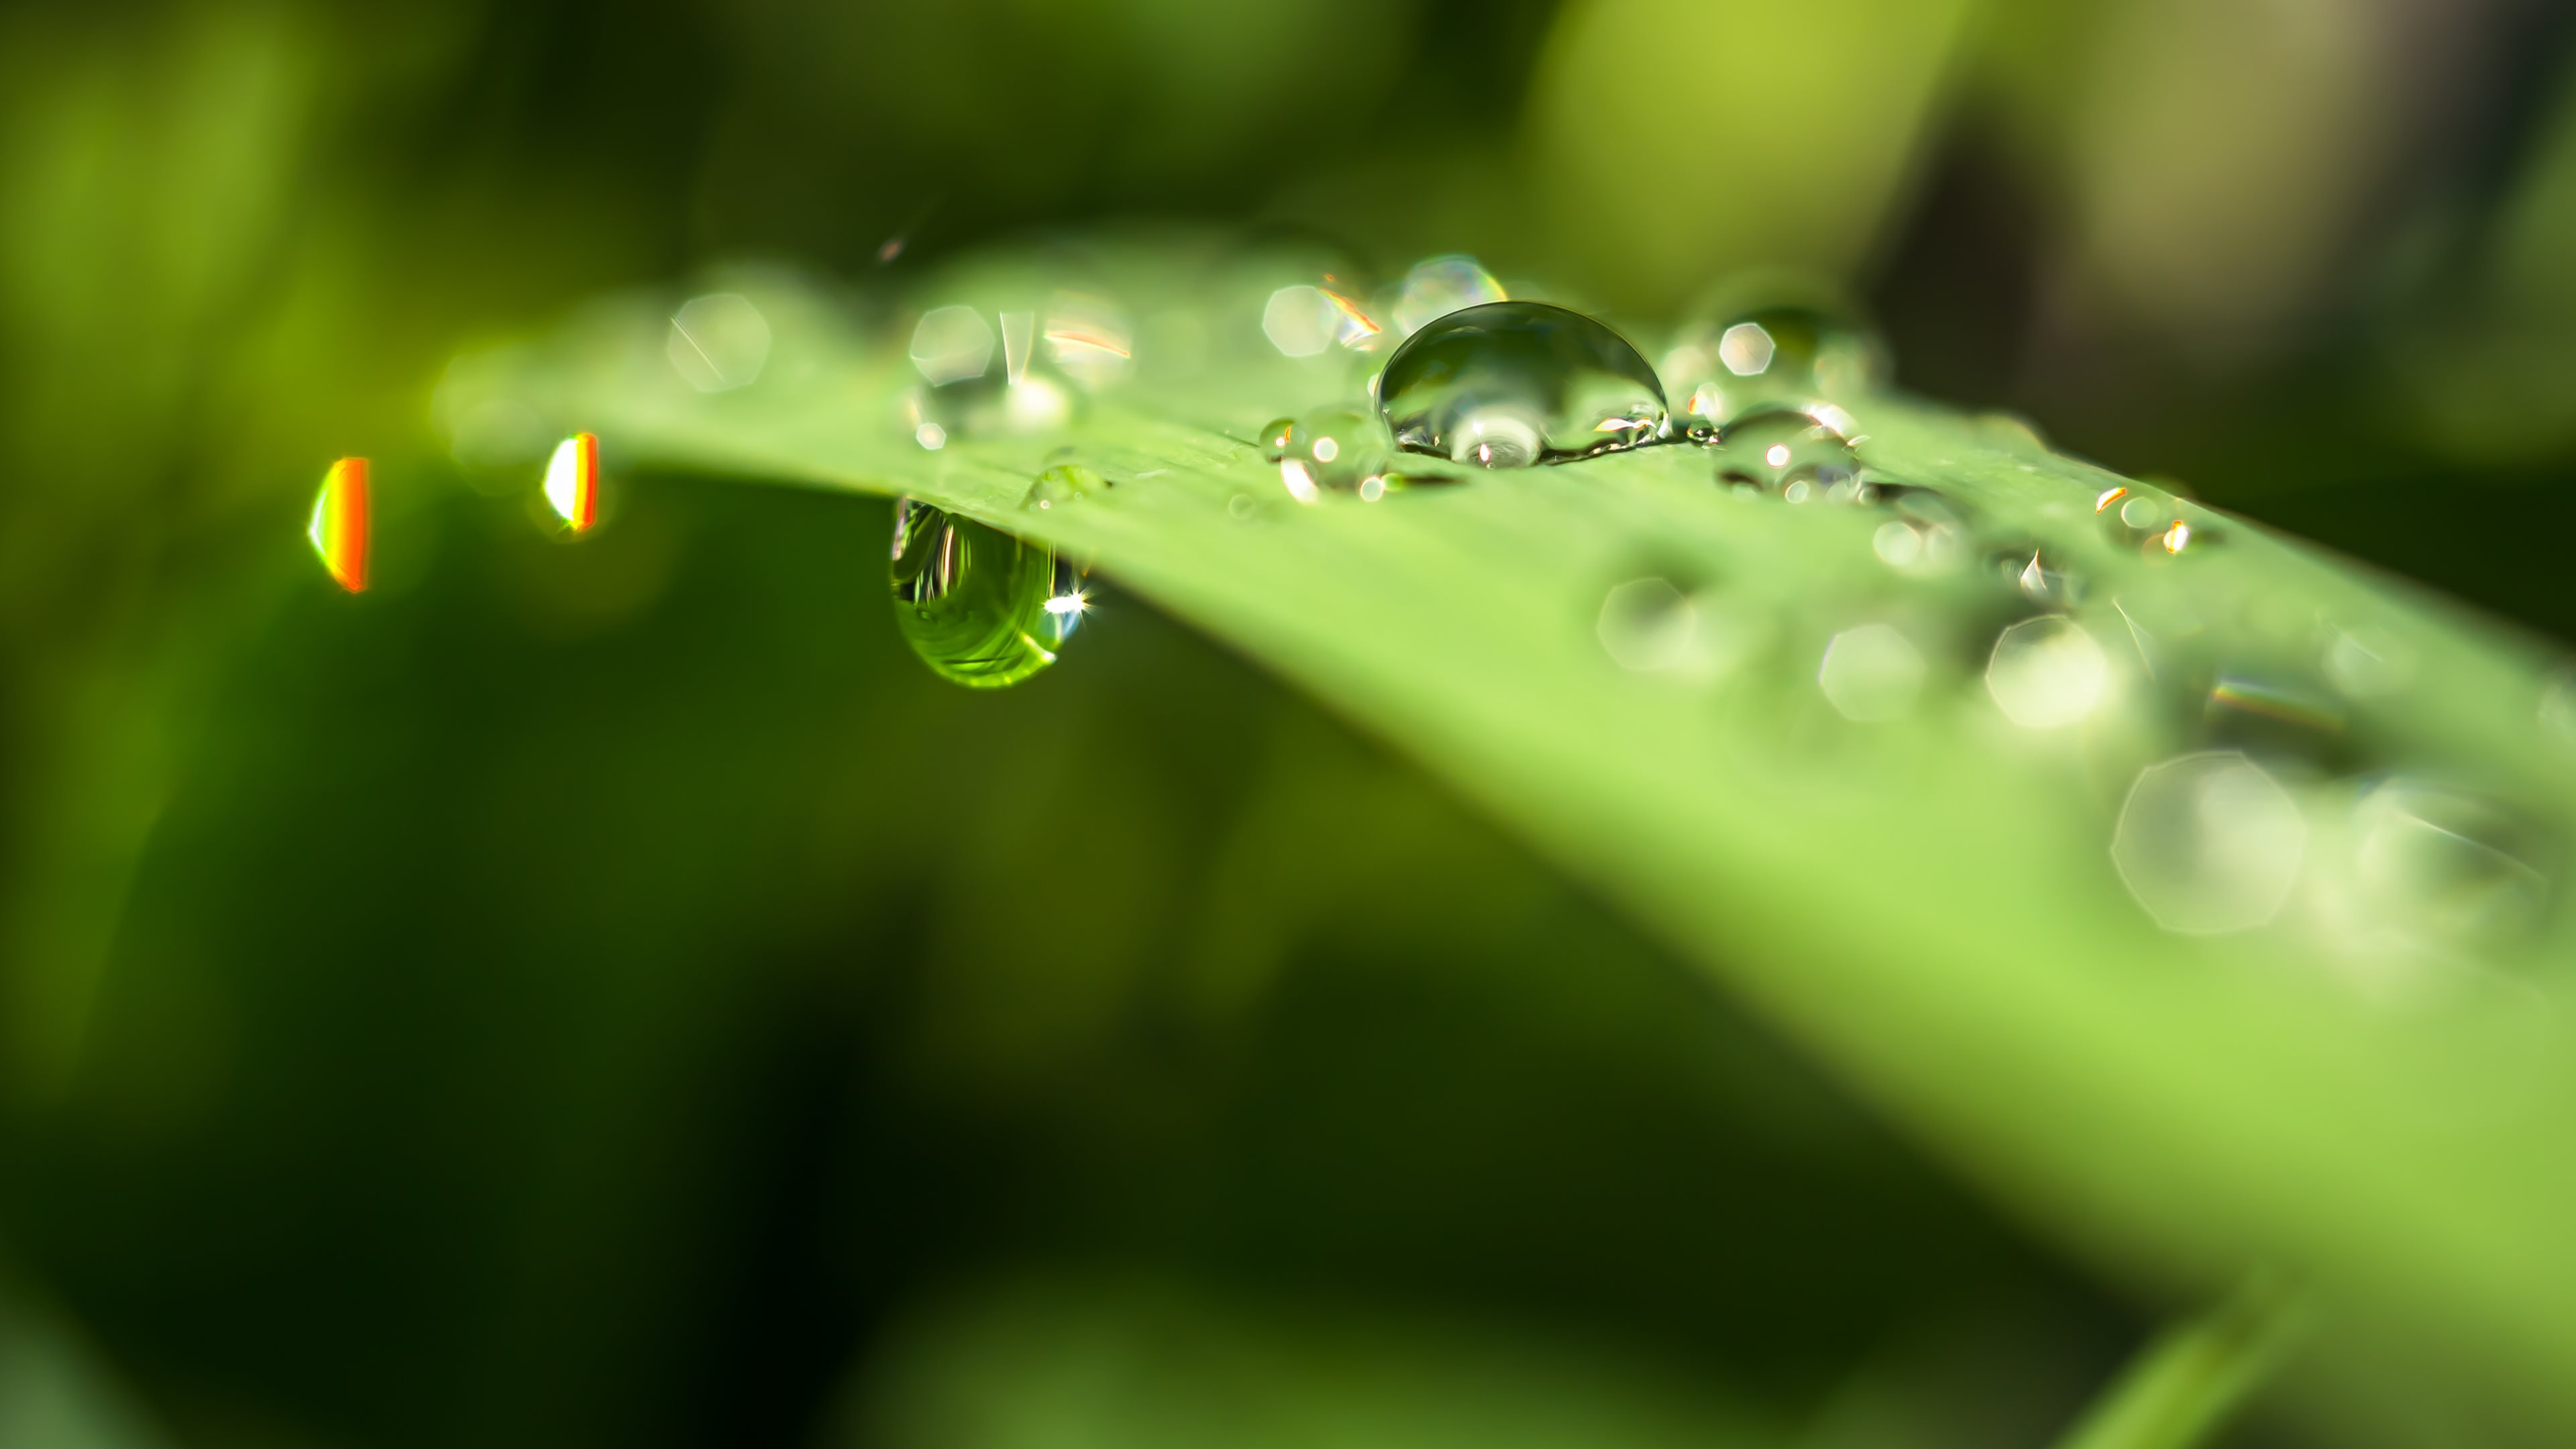 droplets on leaves 4k - photo #44